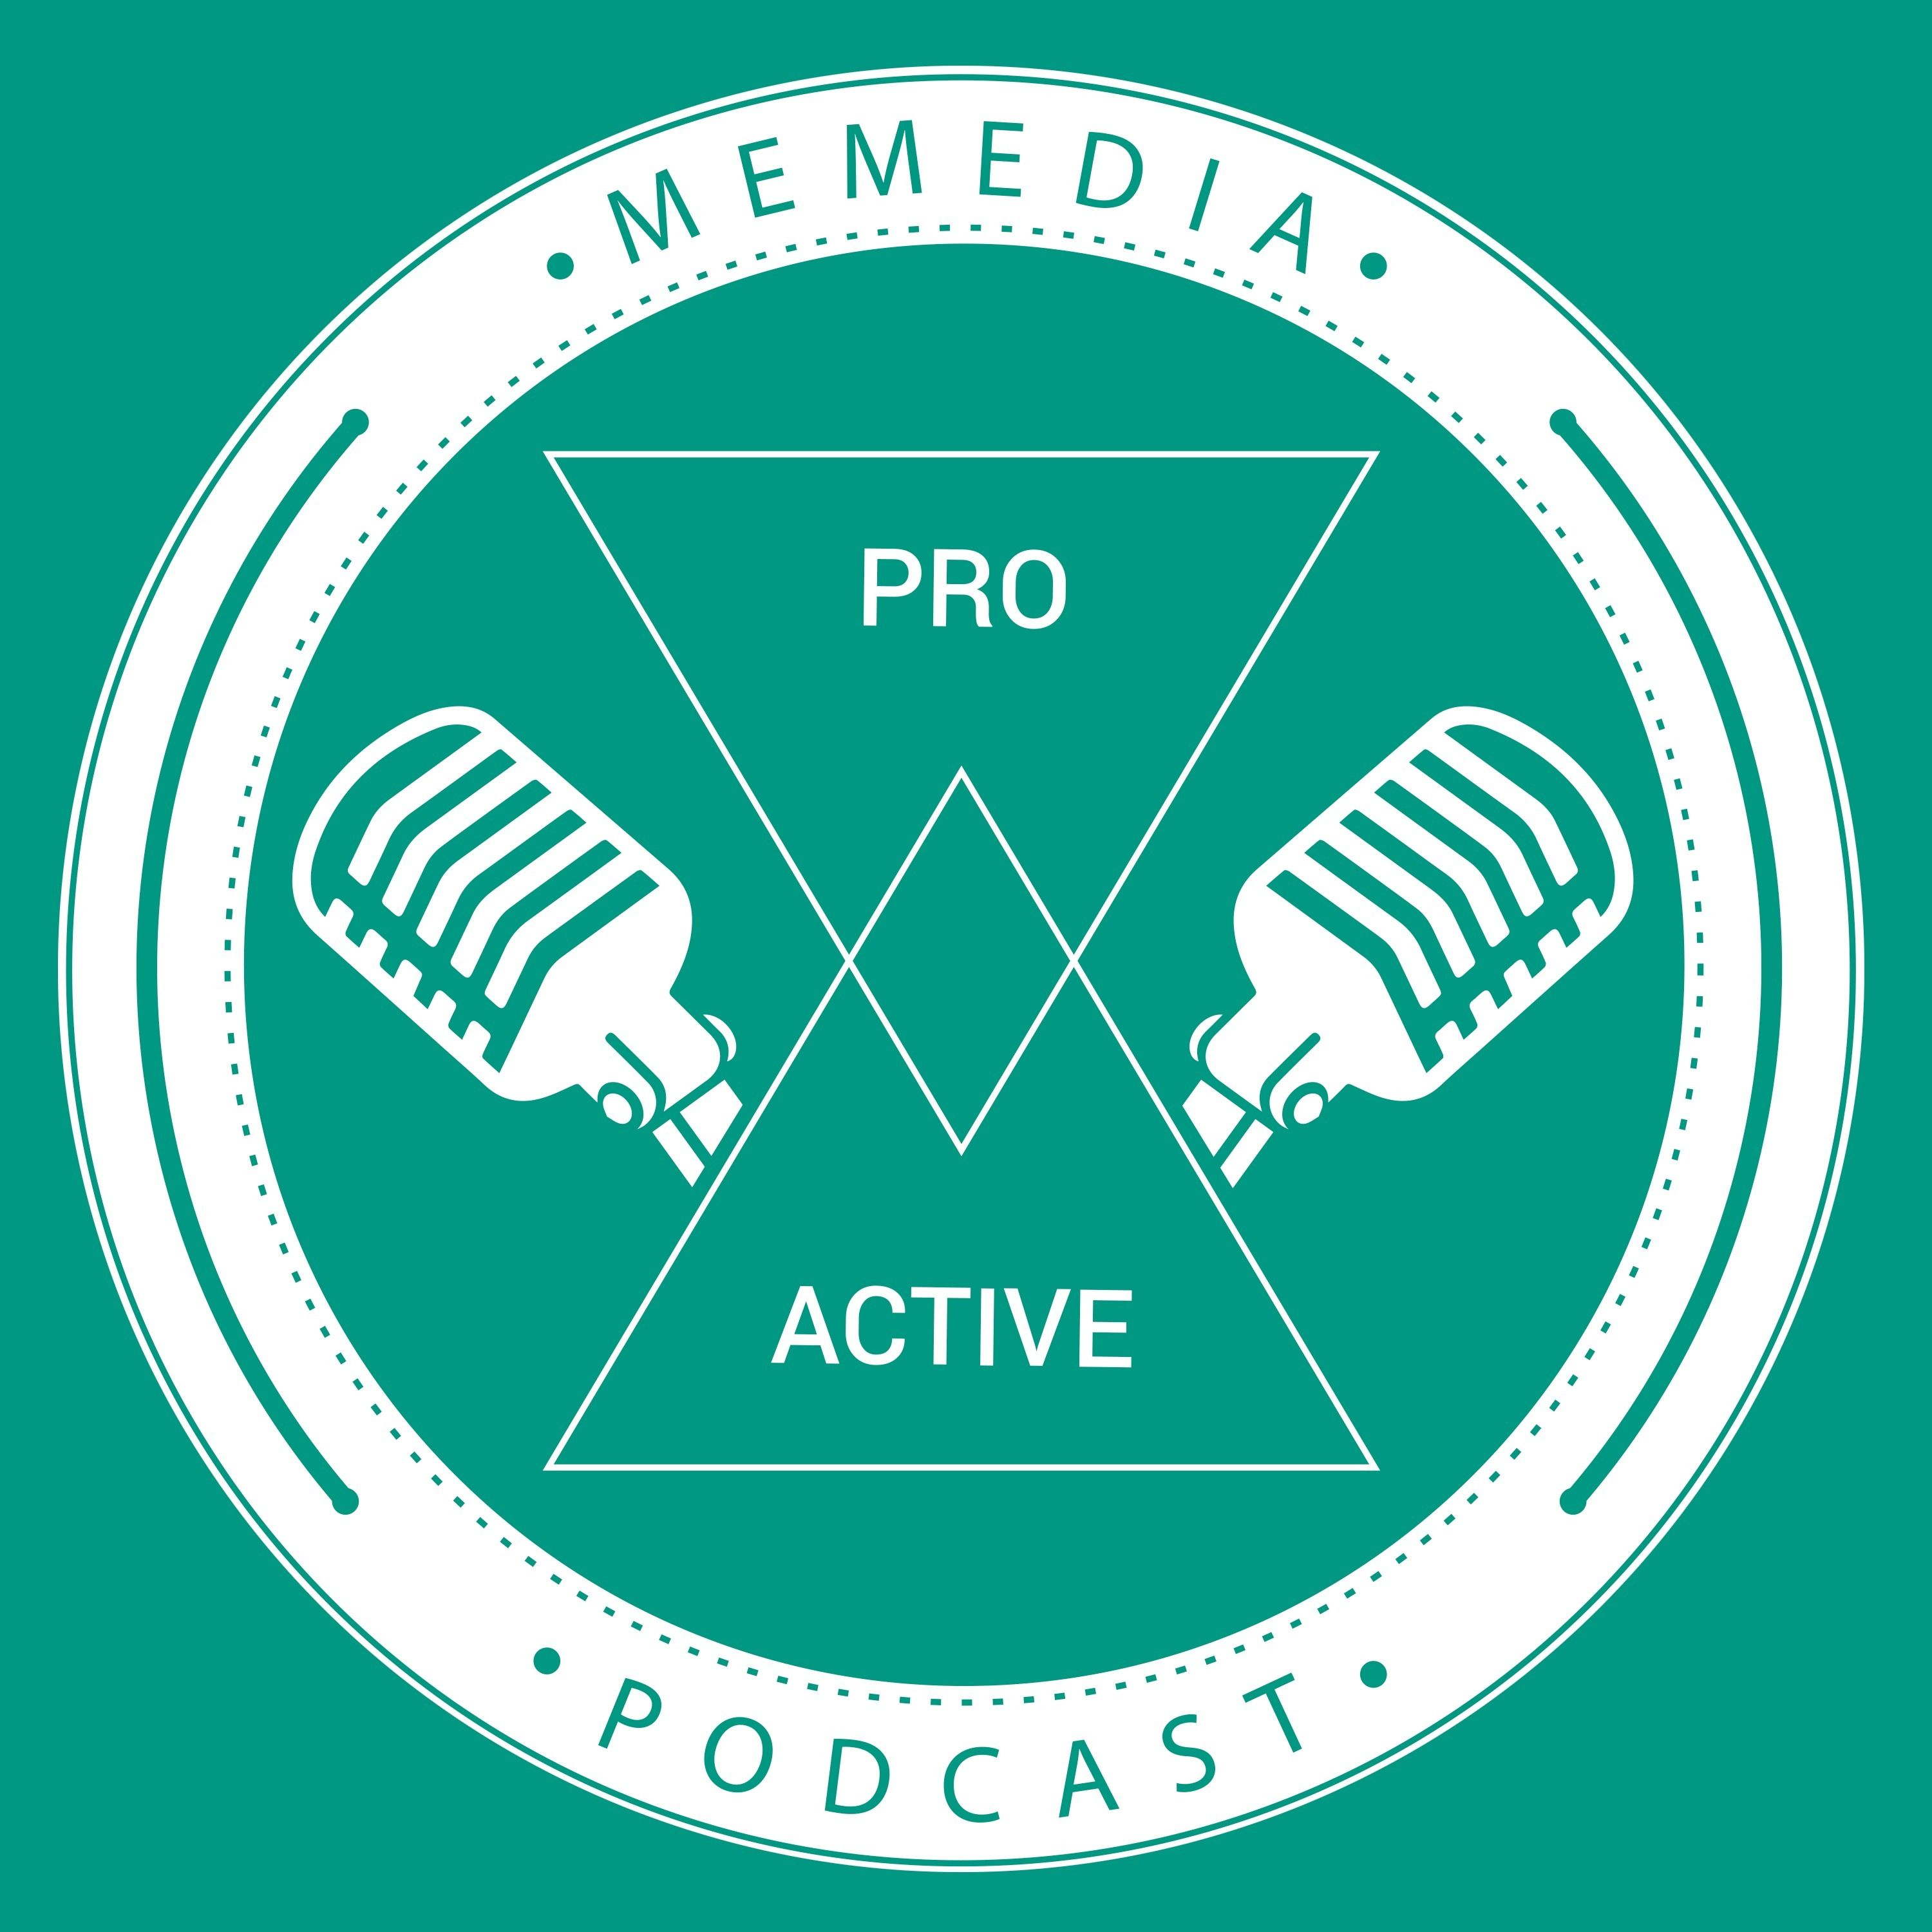 PROACTIVE Podcast with MeMedia